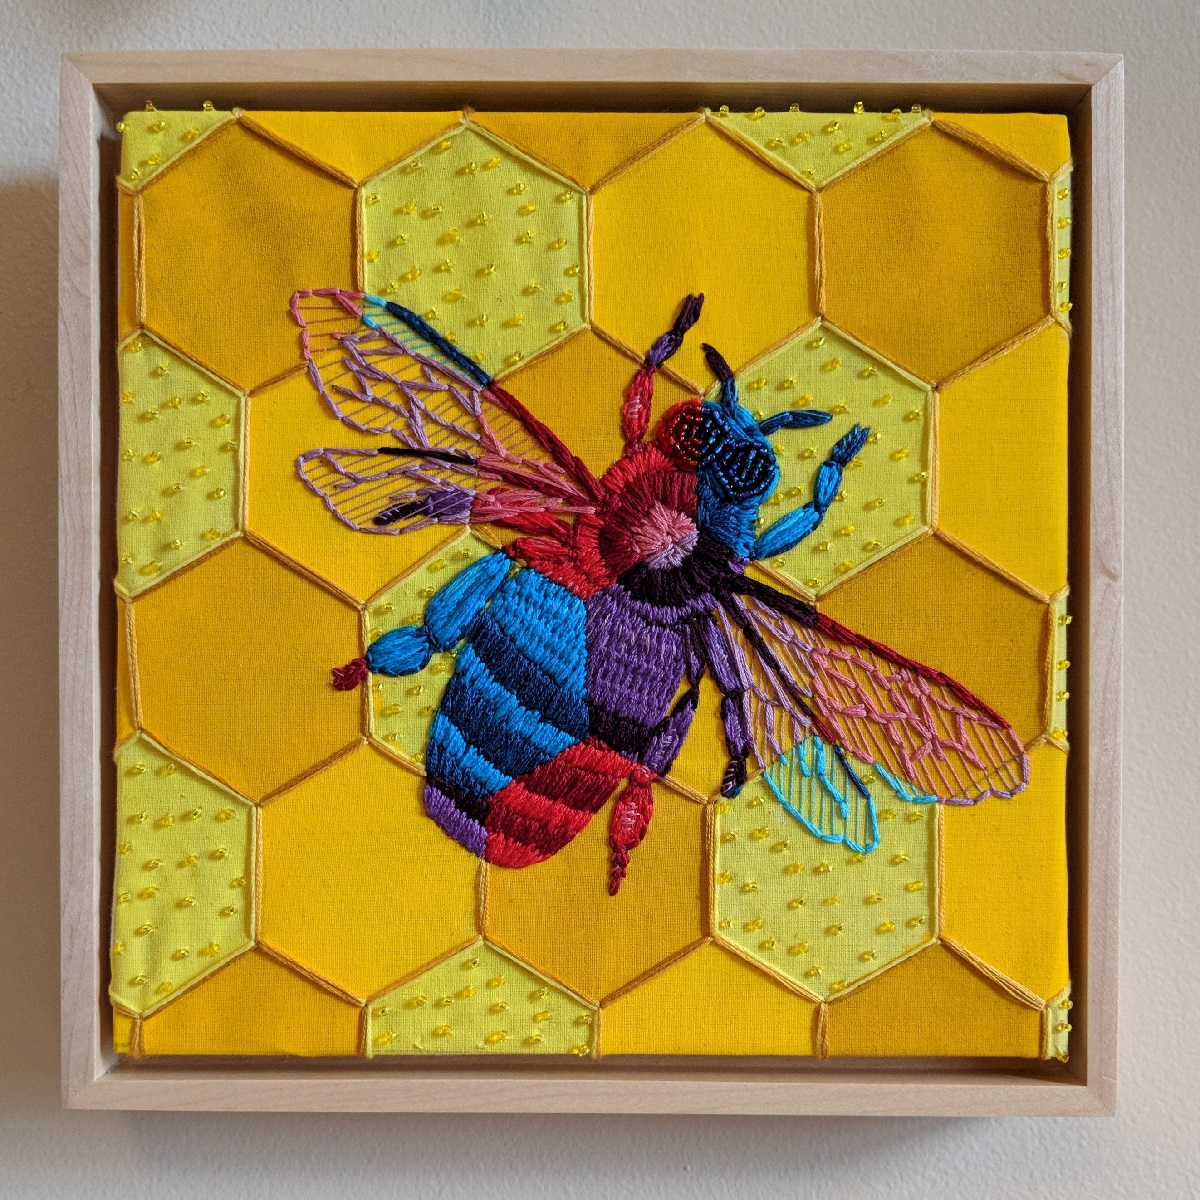 """Honeycomb Bee"" by Jesi Evans, Mixed media embroidery, 8x8in, 2018, $500"